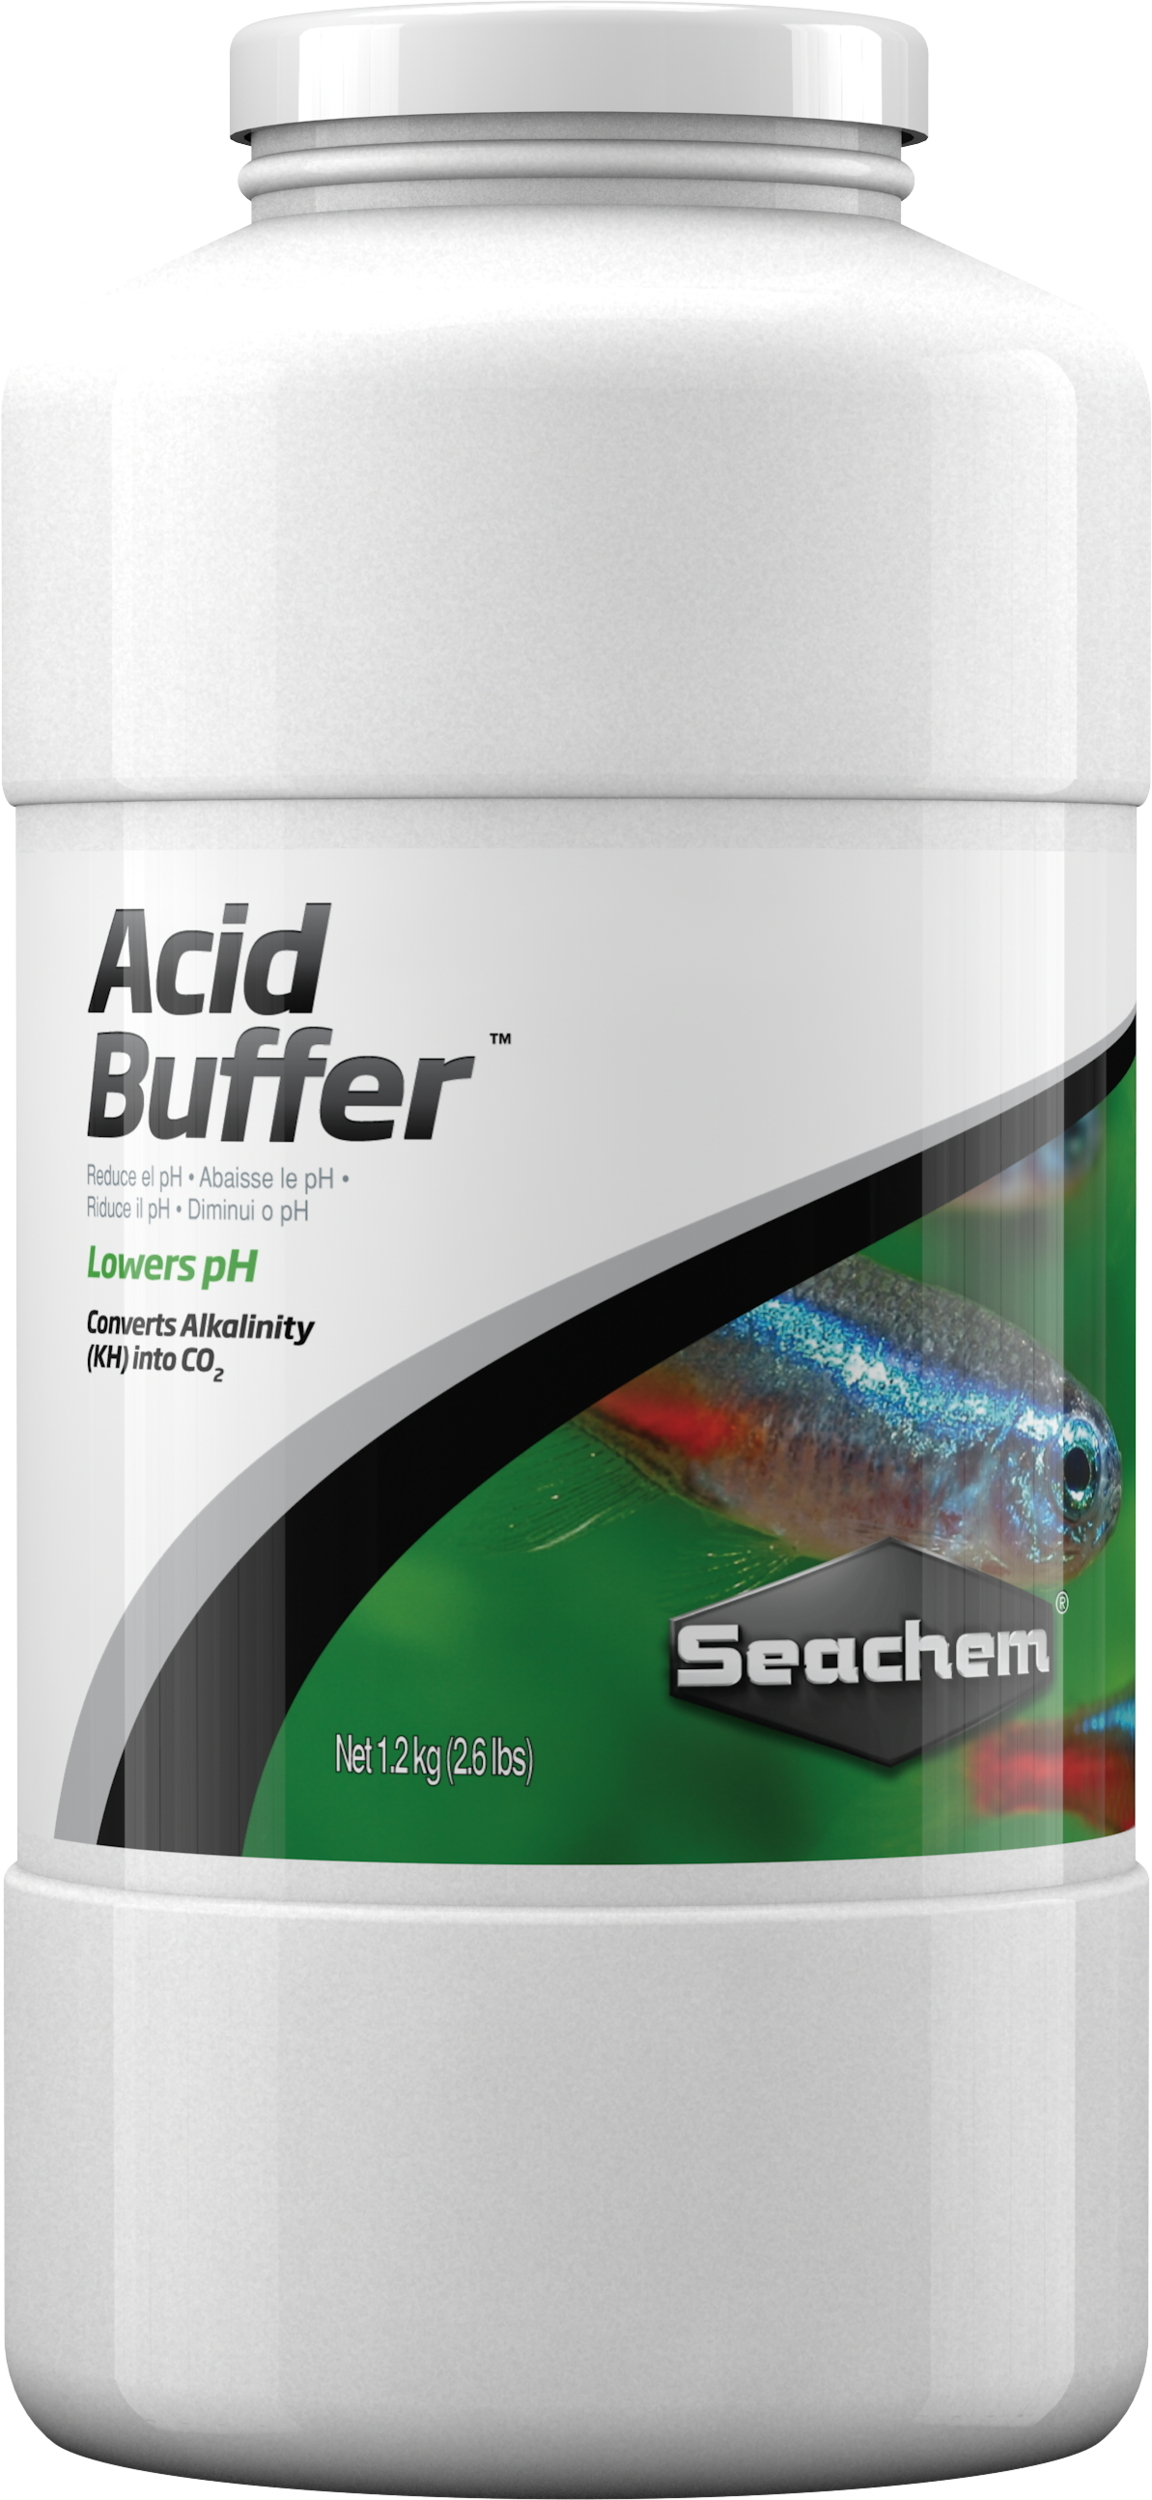 SEACHEM Acid Buffer 1,2 Kg solution tampon pour abaisser ou stabiliser le pH entre 4.0 et 6.8